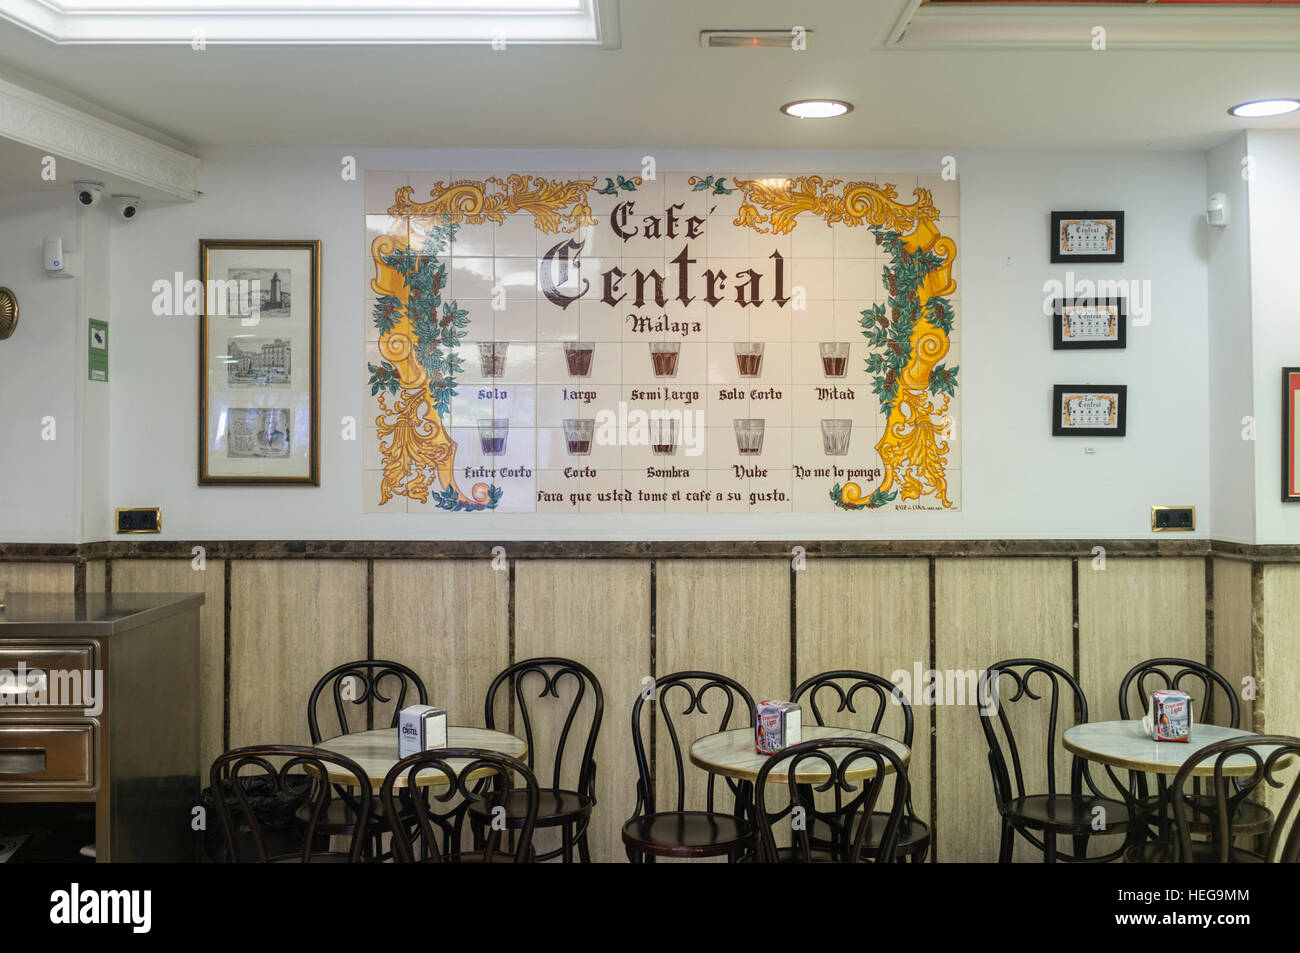 ceramic tiles mural showing different ways to serve coffee at cafe